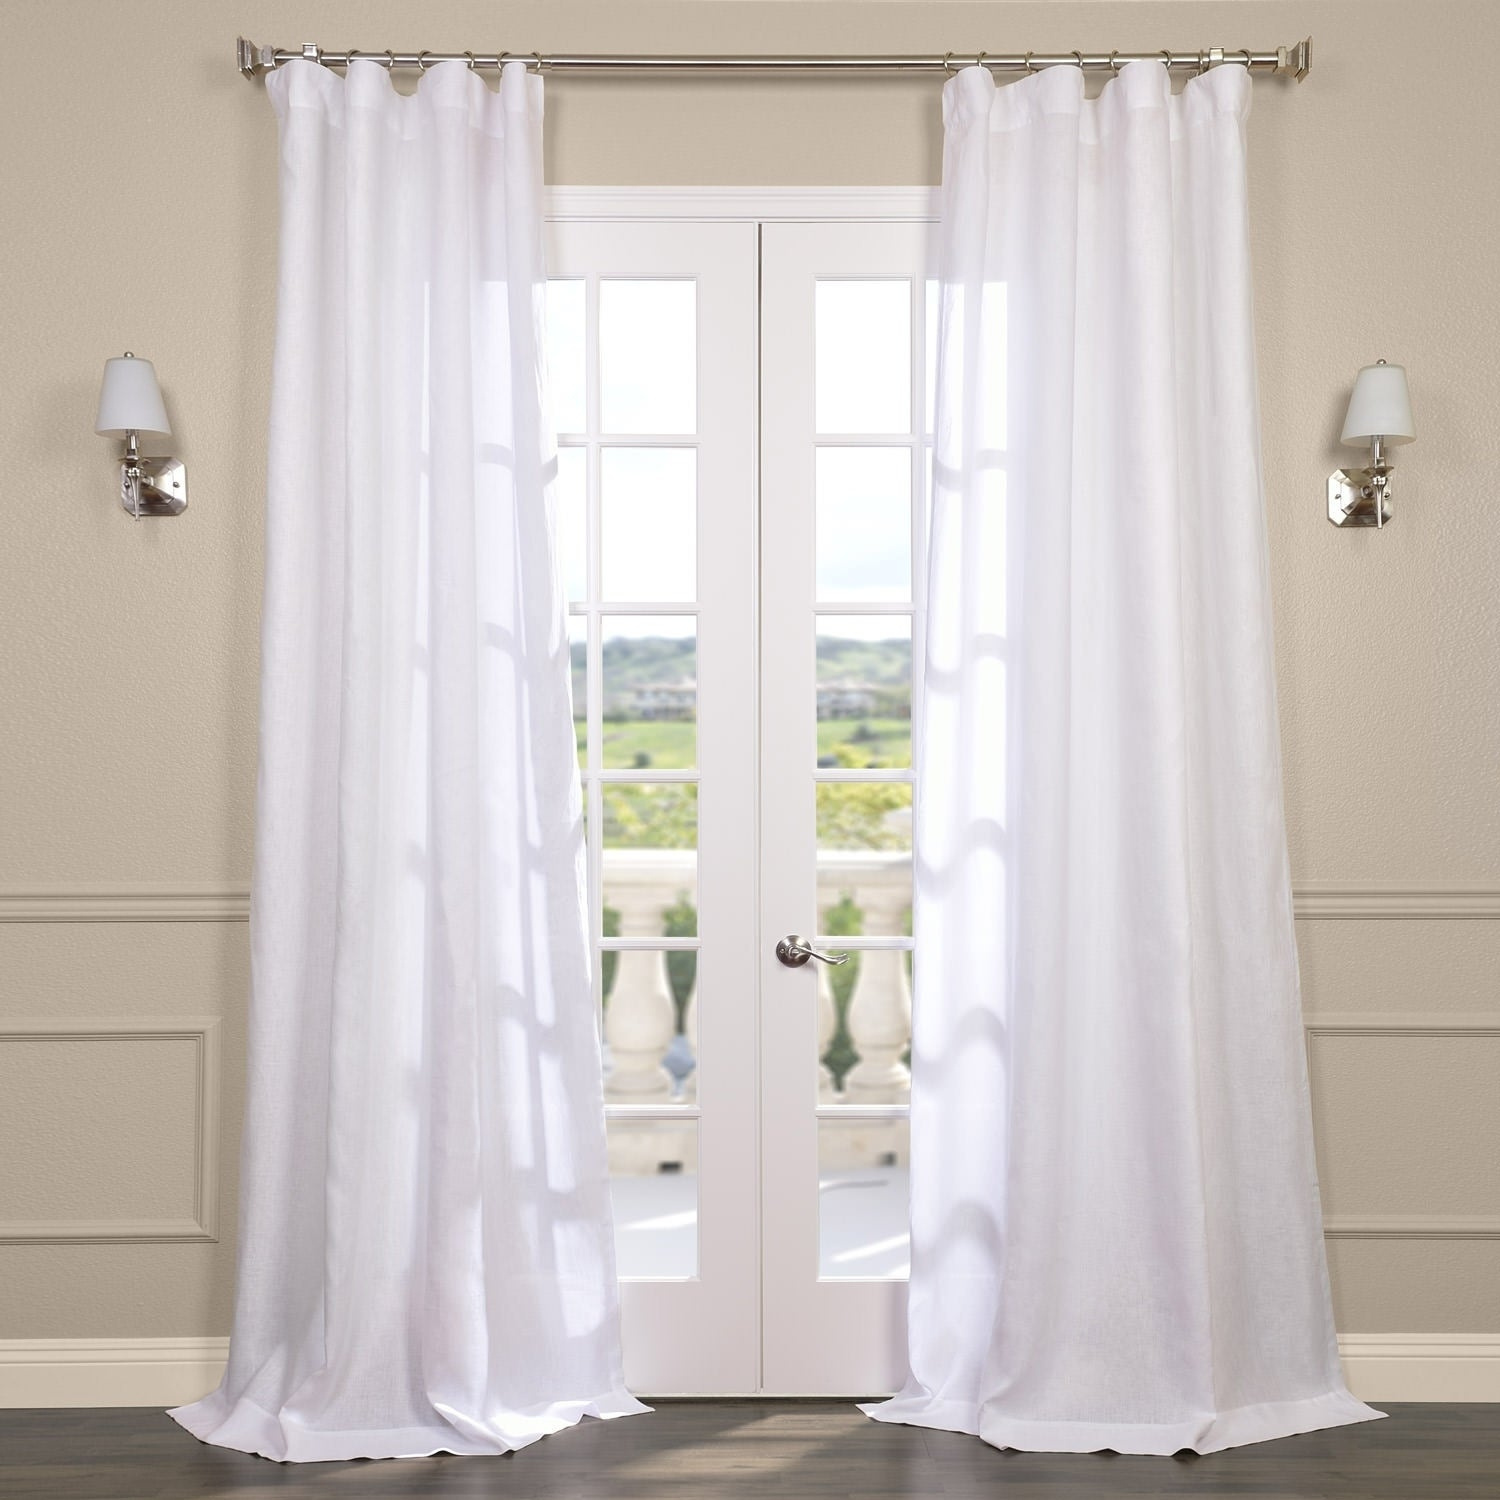 Popular Photo of Signature French Linen Curtain Panels